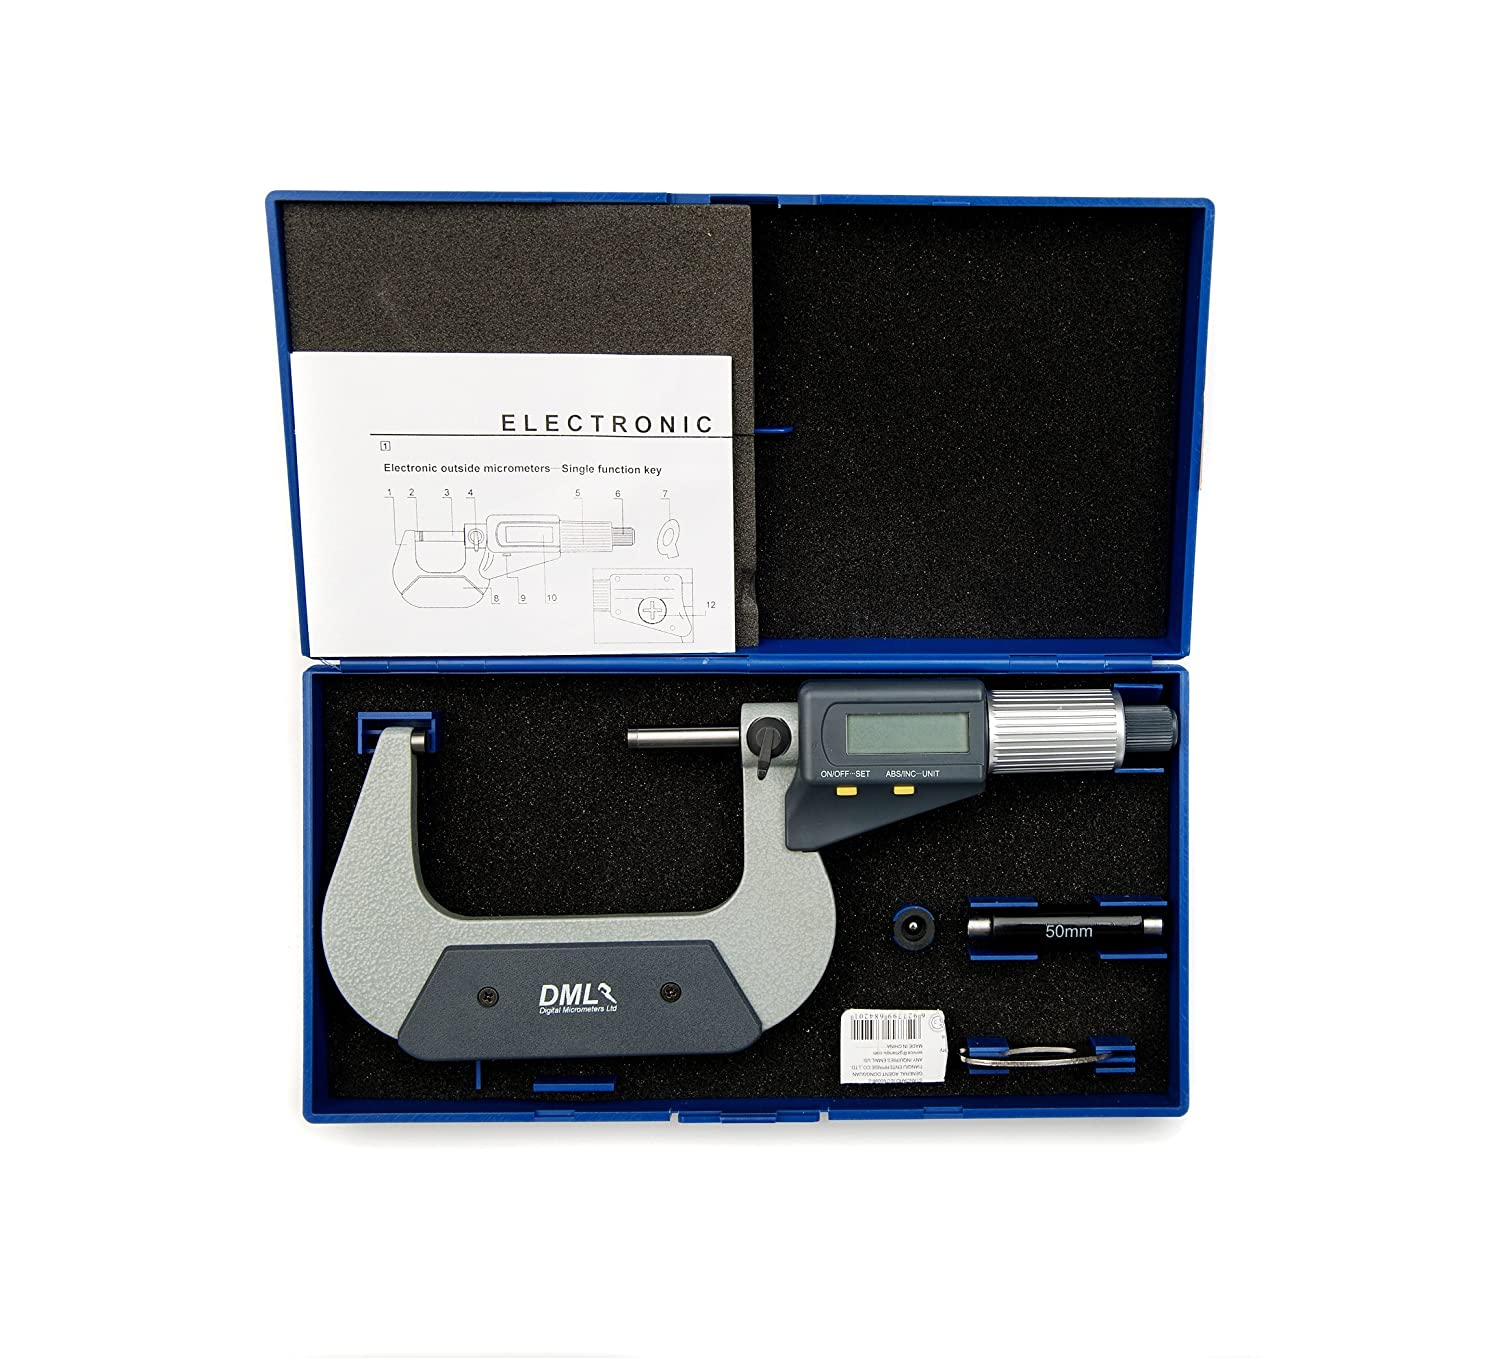 DML 50-75mm Digital Micrometer External Electronic Gauge 12 Months Warranty Digital Micrometers Ltd DM3075